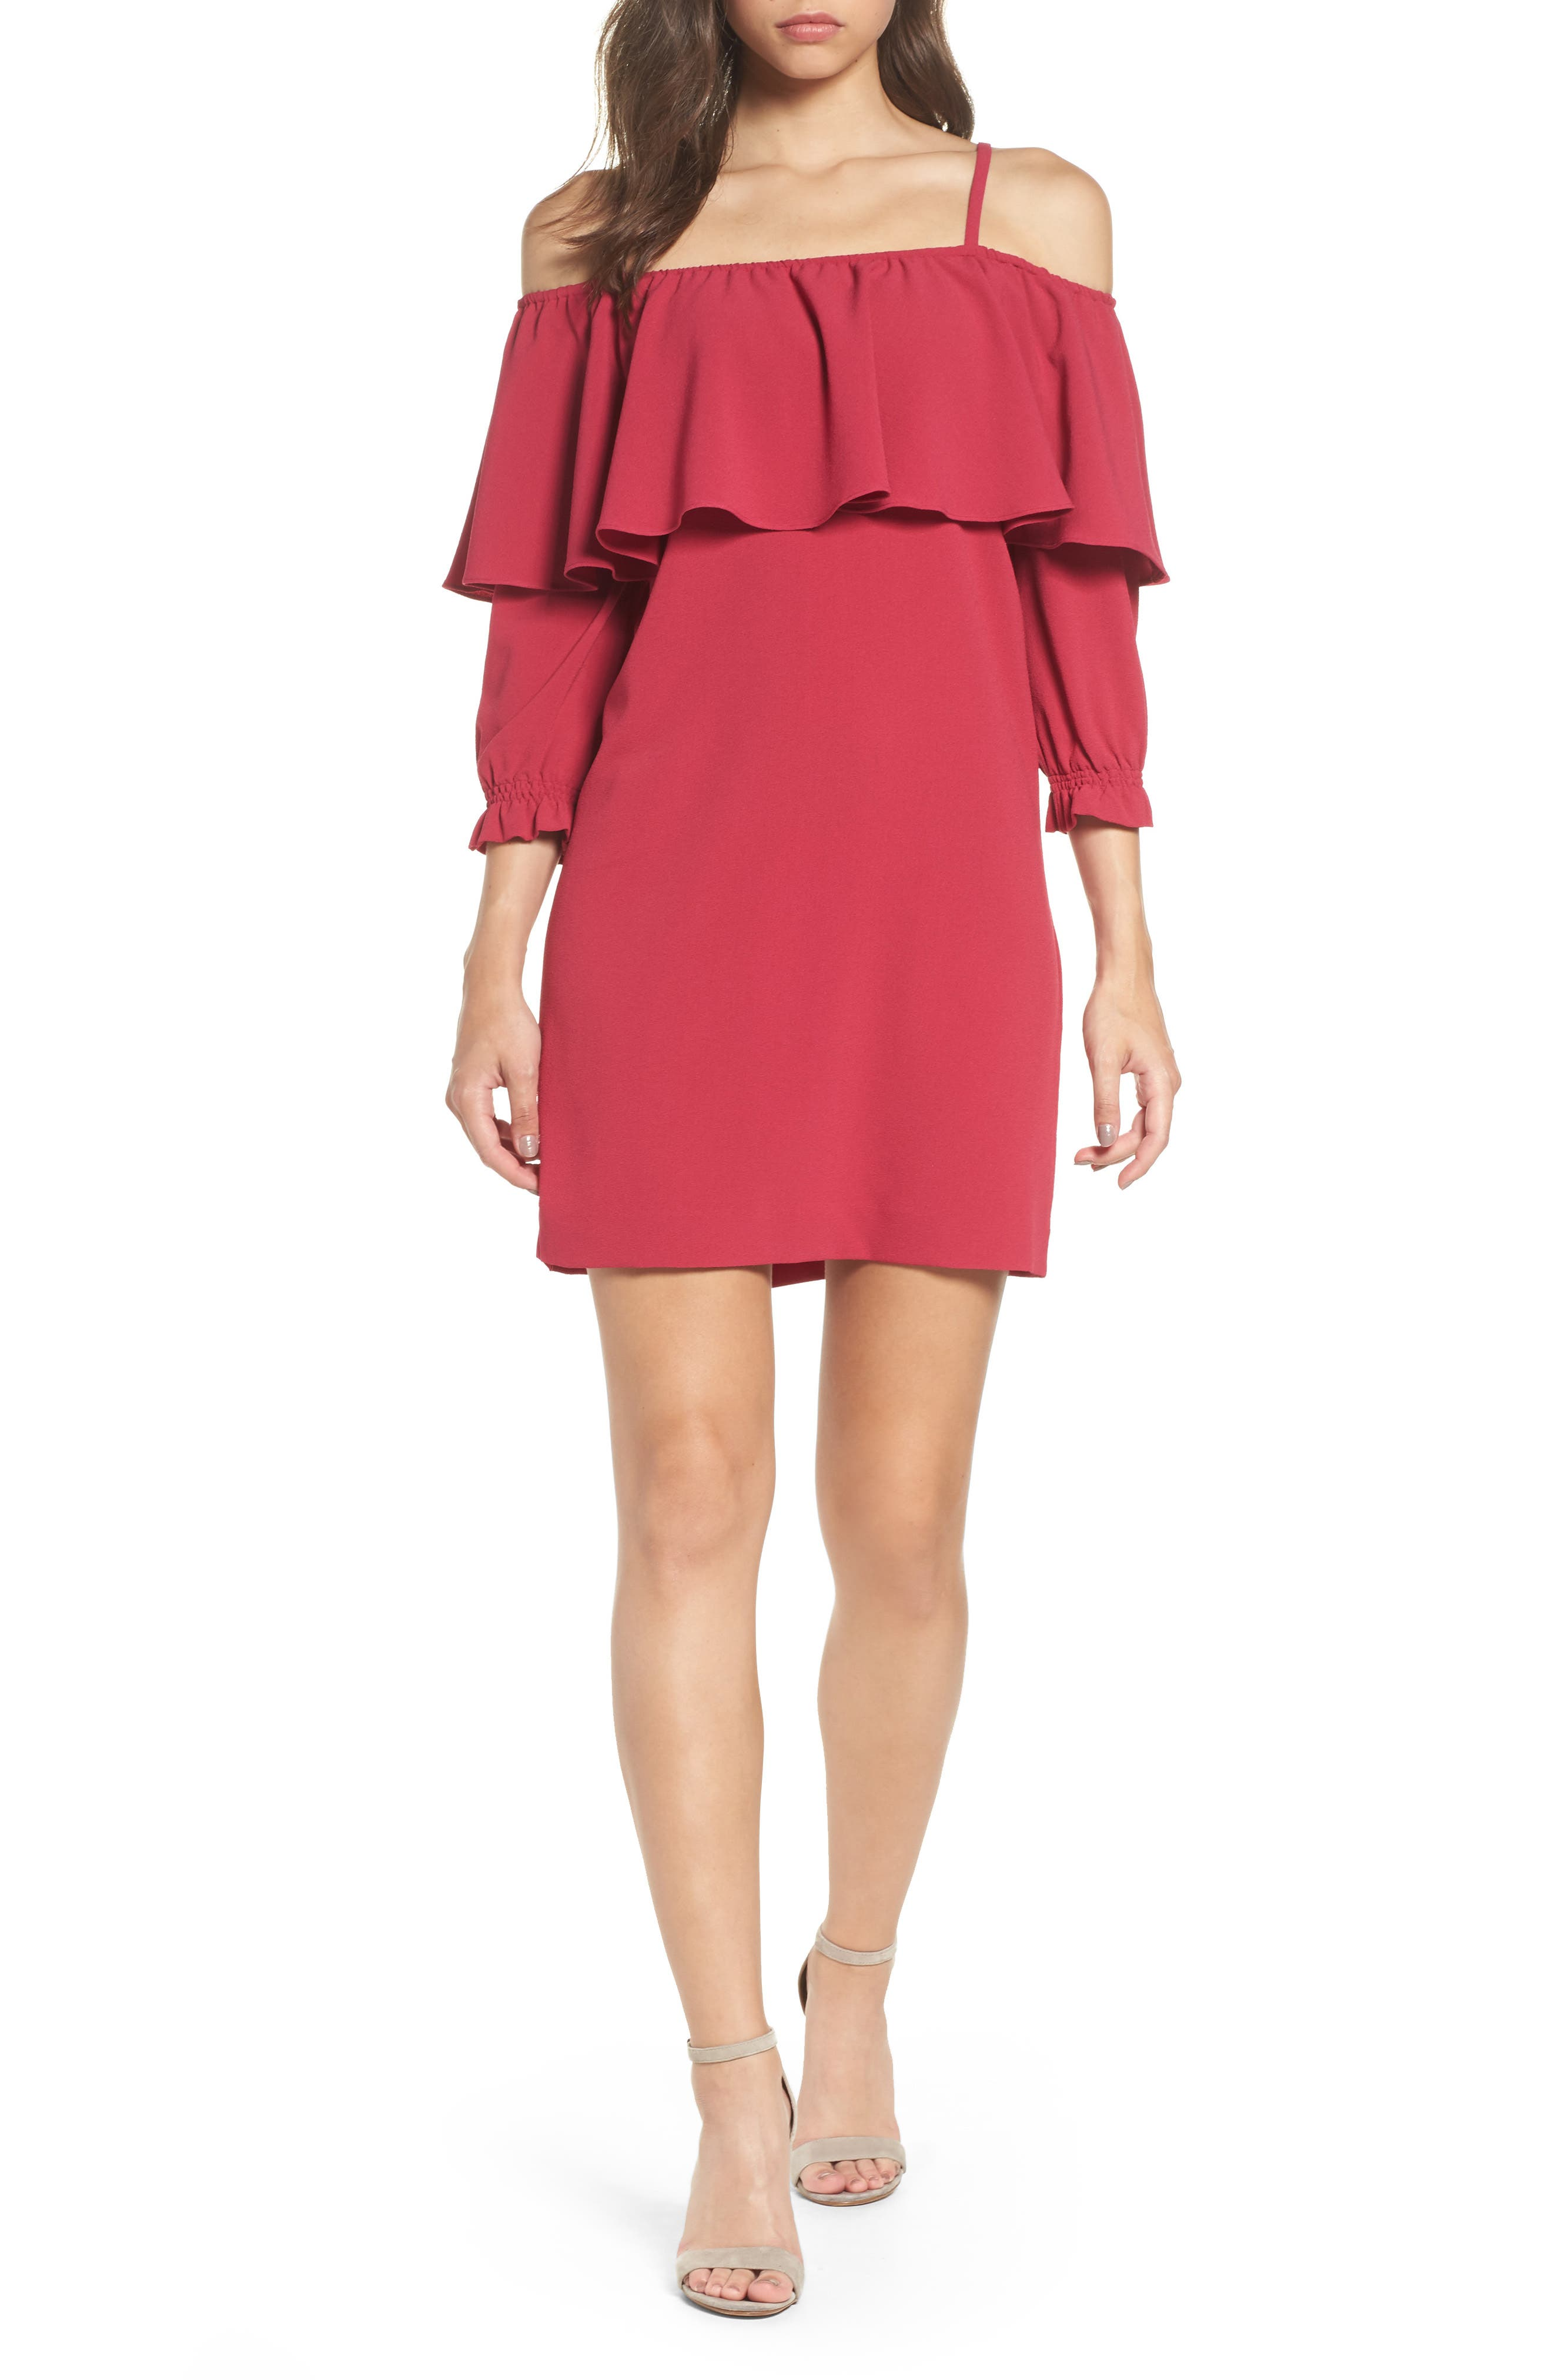 Felicity & Coco Ruffle Cold Shoulder Shift Dress (Nordstrom Exclusive)